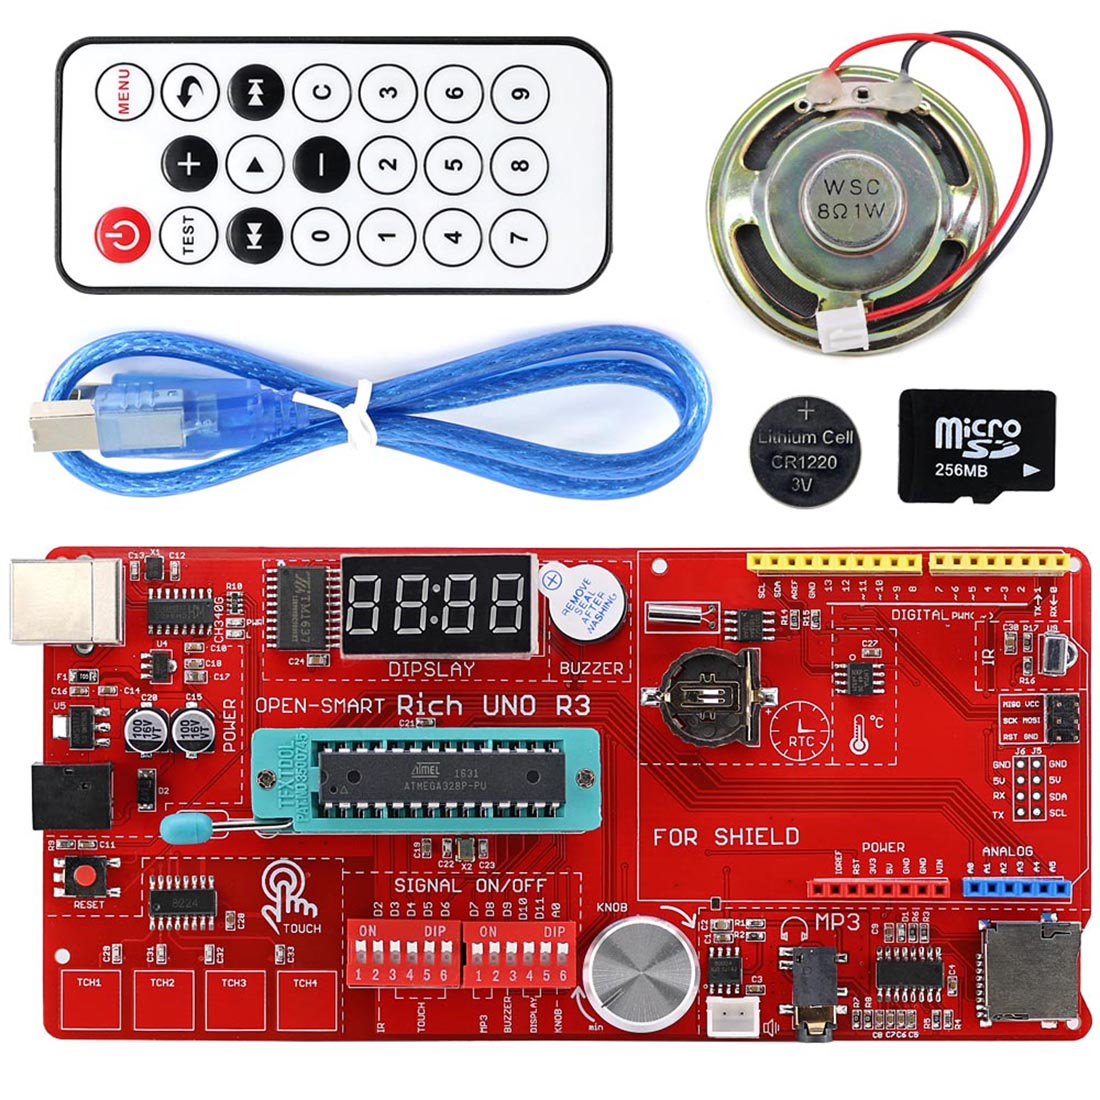 MODIKER DIY Kit For UNO R3 Atmega328P Development Board Module Kit With Trumpet Remote Control For Arduino Programmable Toys